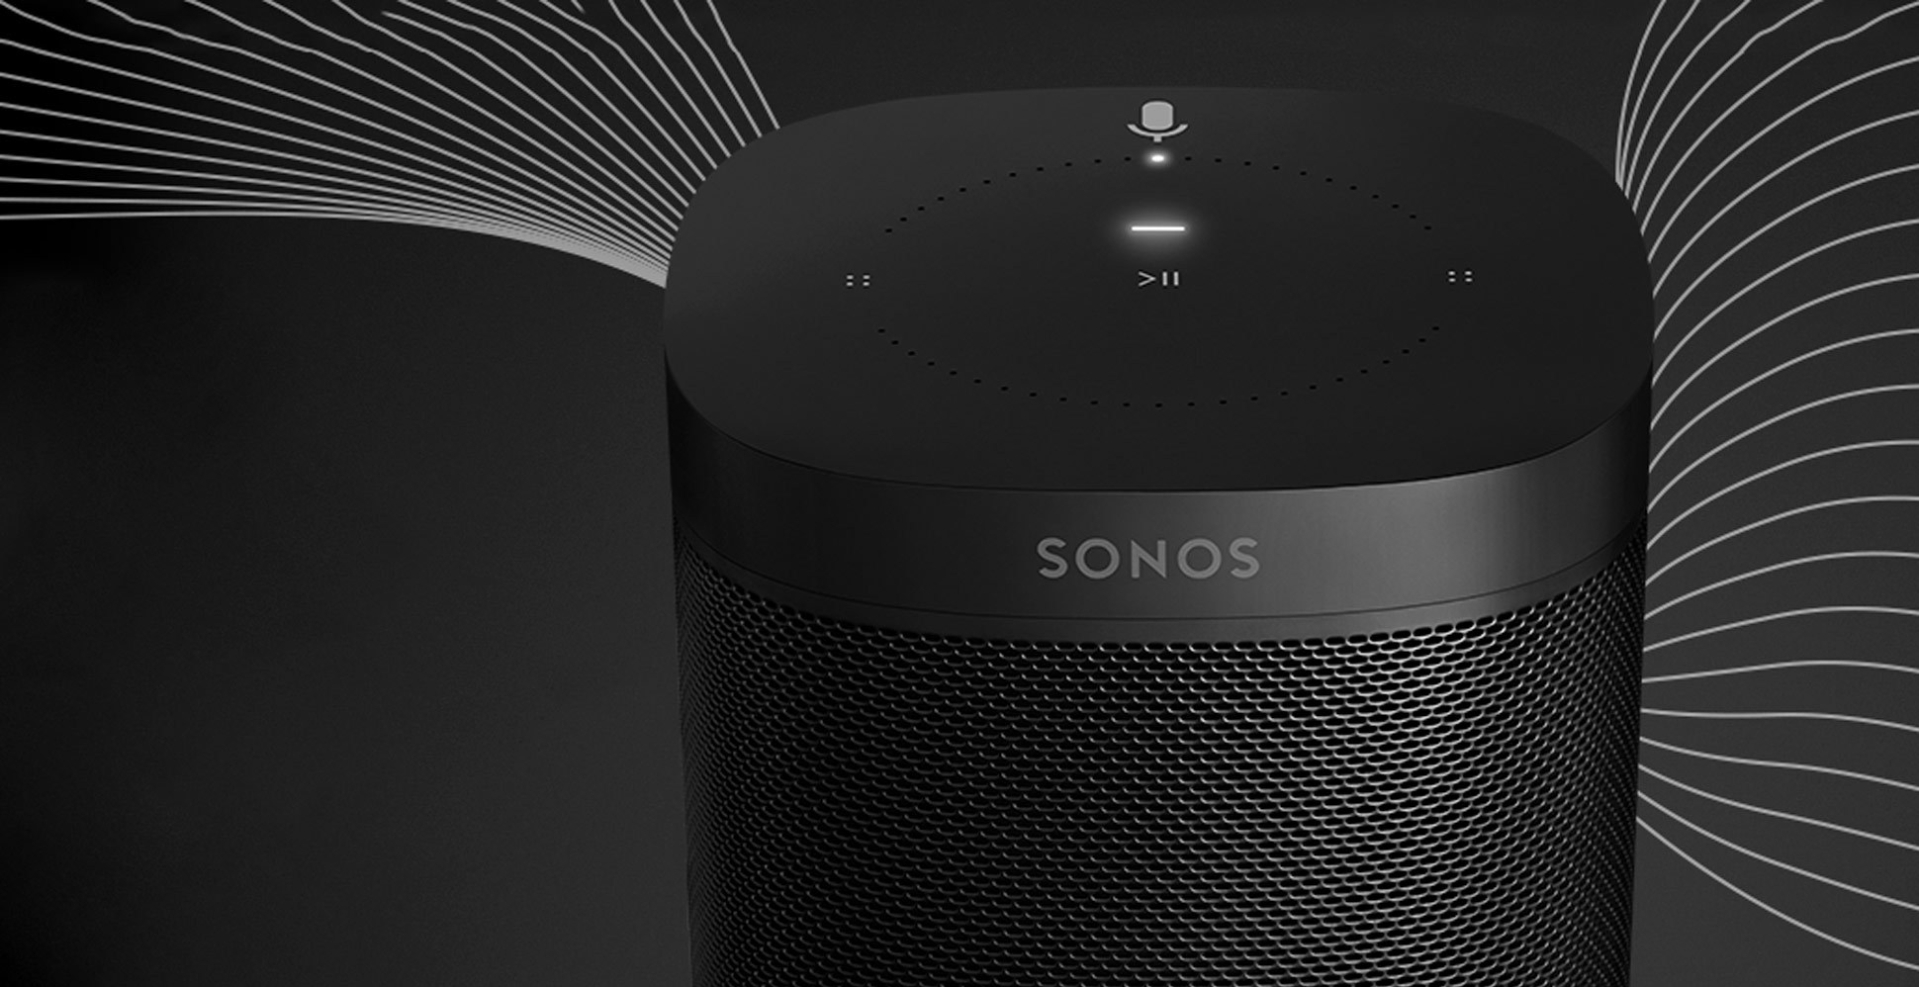 Sonos-1-Gear-Patrol-Lead-Full.jpg